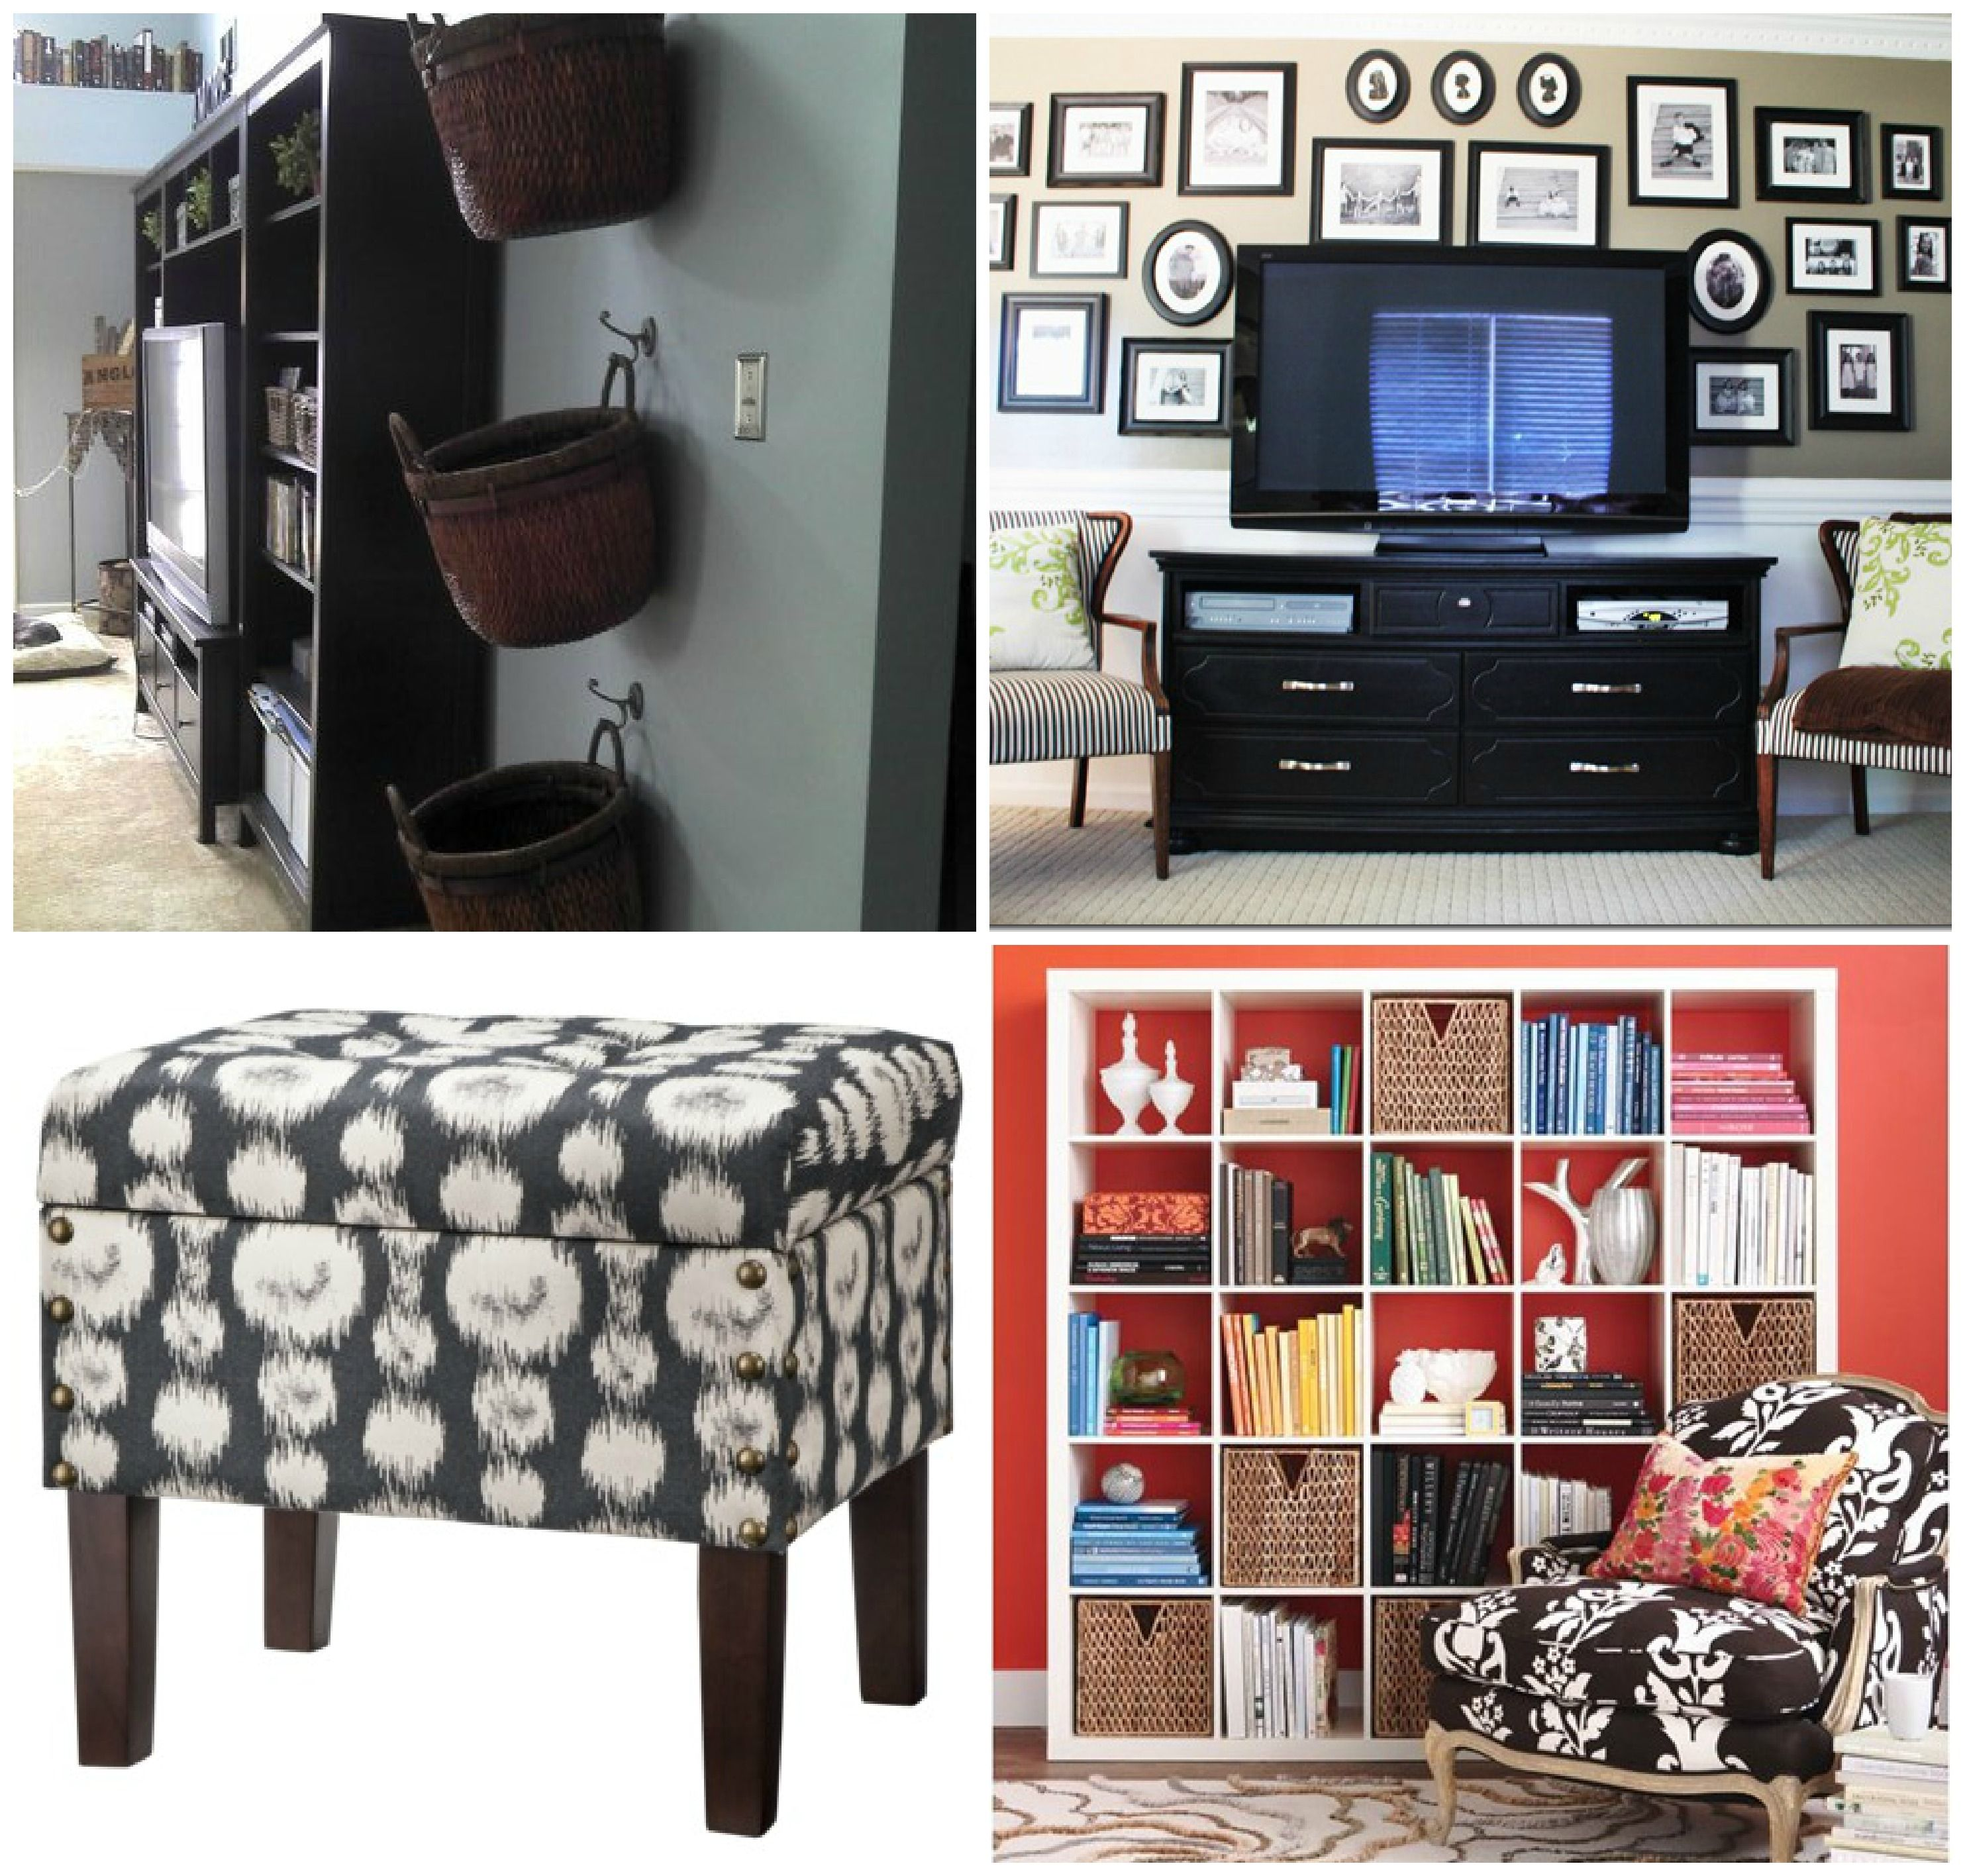 Maximizing Small Space Living Small Room Design Small Space Living Living Room Organization #organizing #a #small #living #room